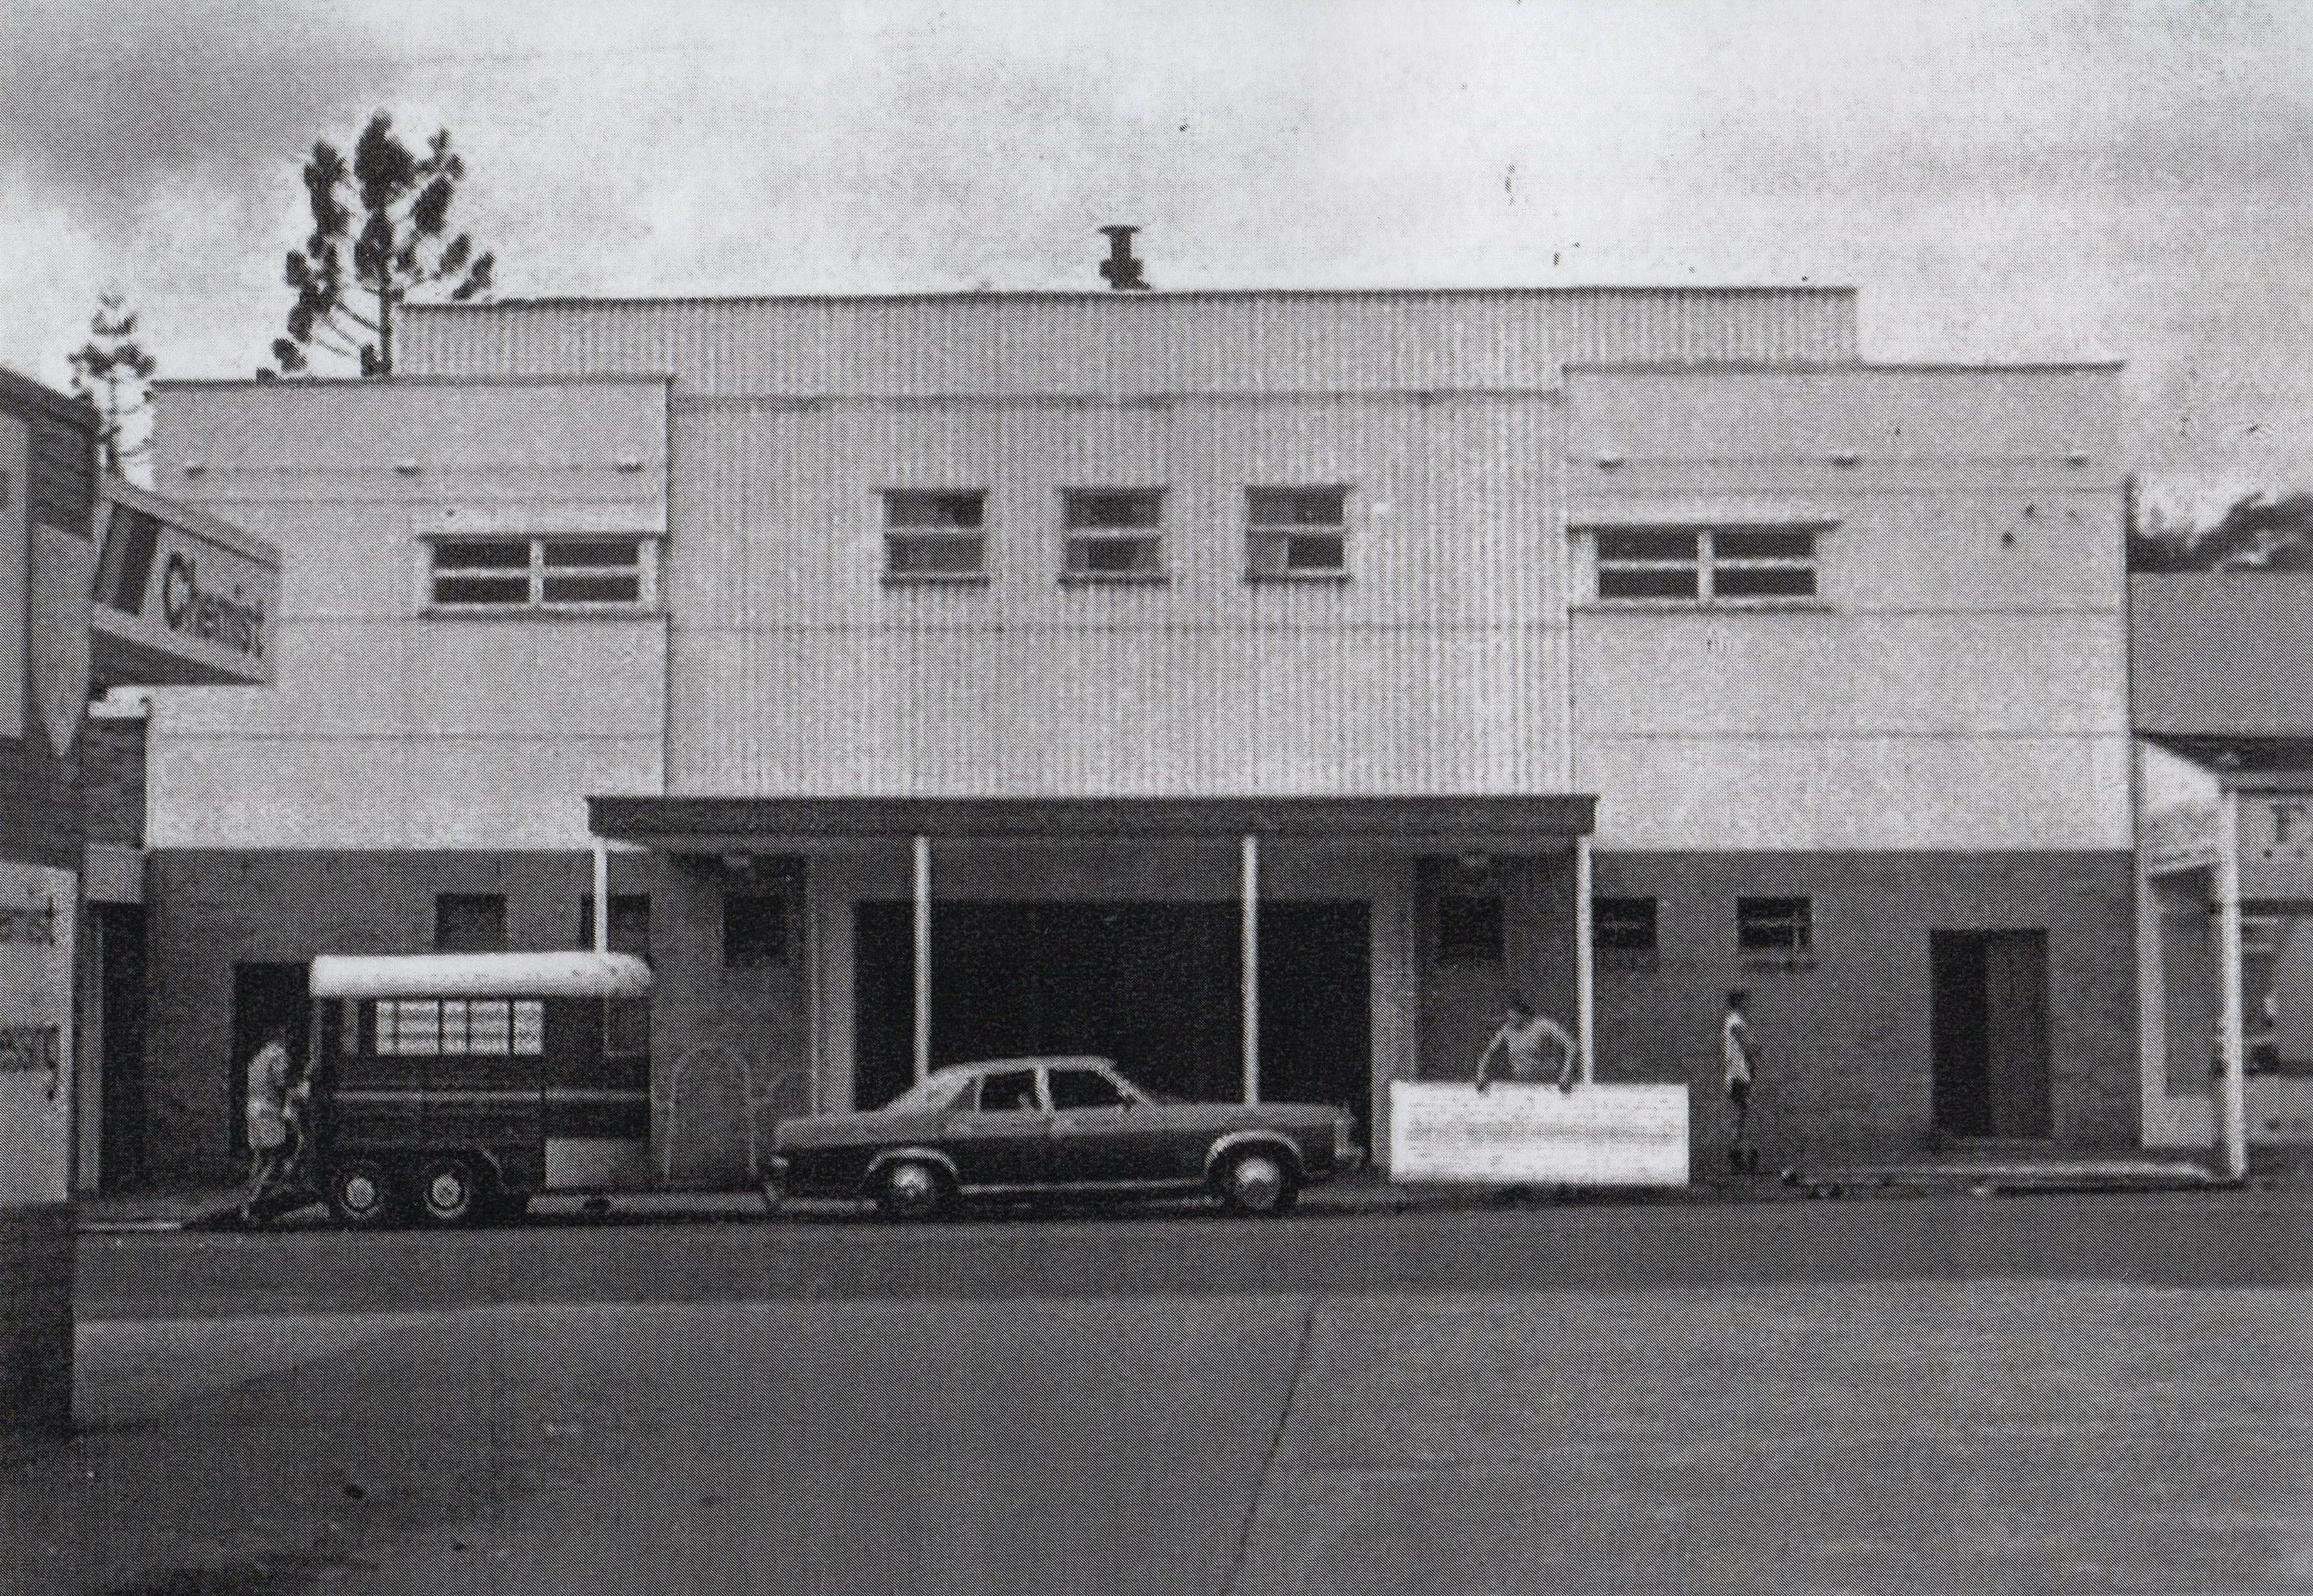 Sherwood Picture Theatre in 1985 just prior to demolition | Image: Oxley-Chelmer History Group